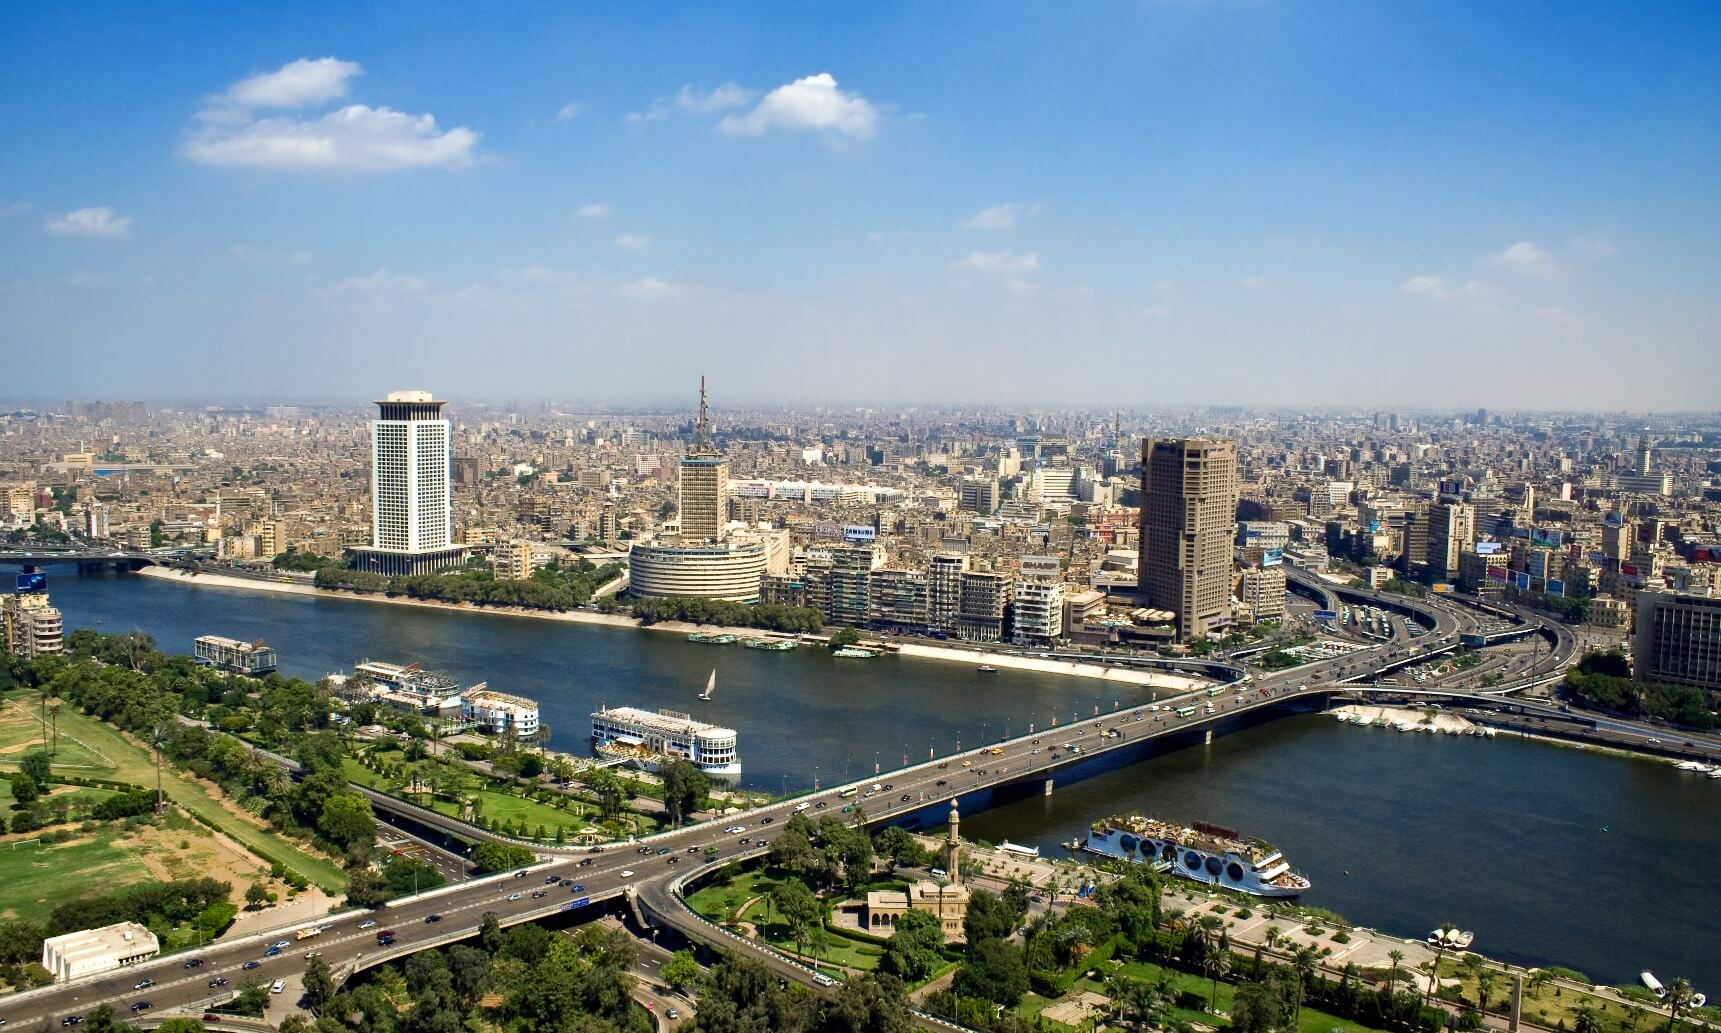 Overlooking Cairo from TV tower, Egypt